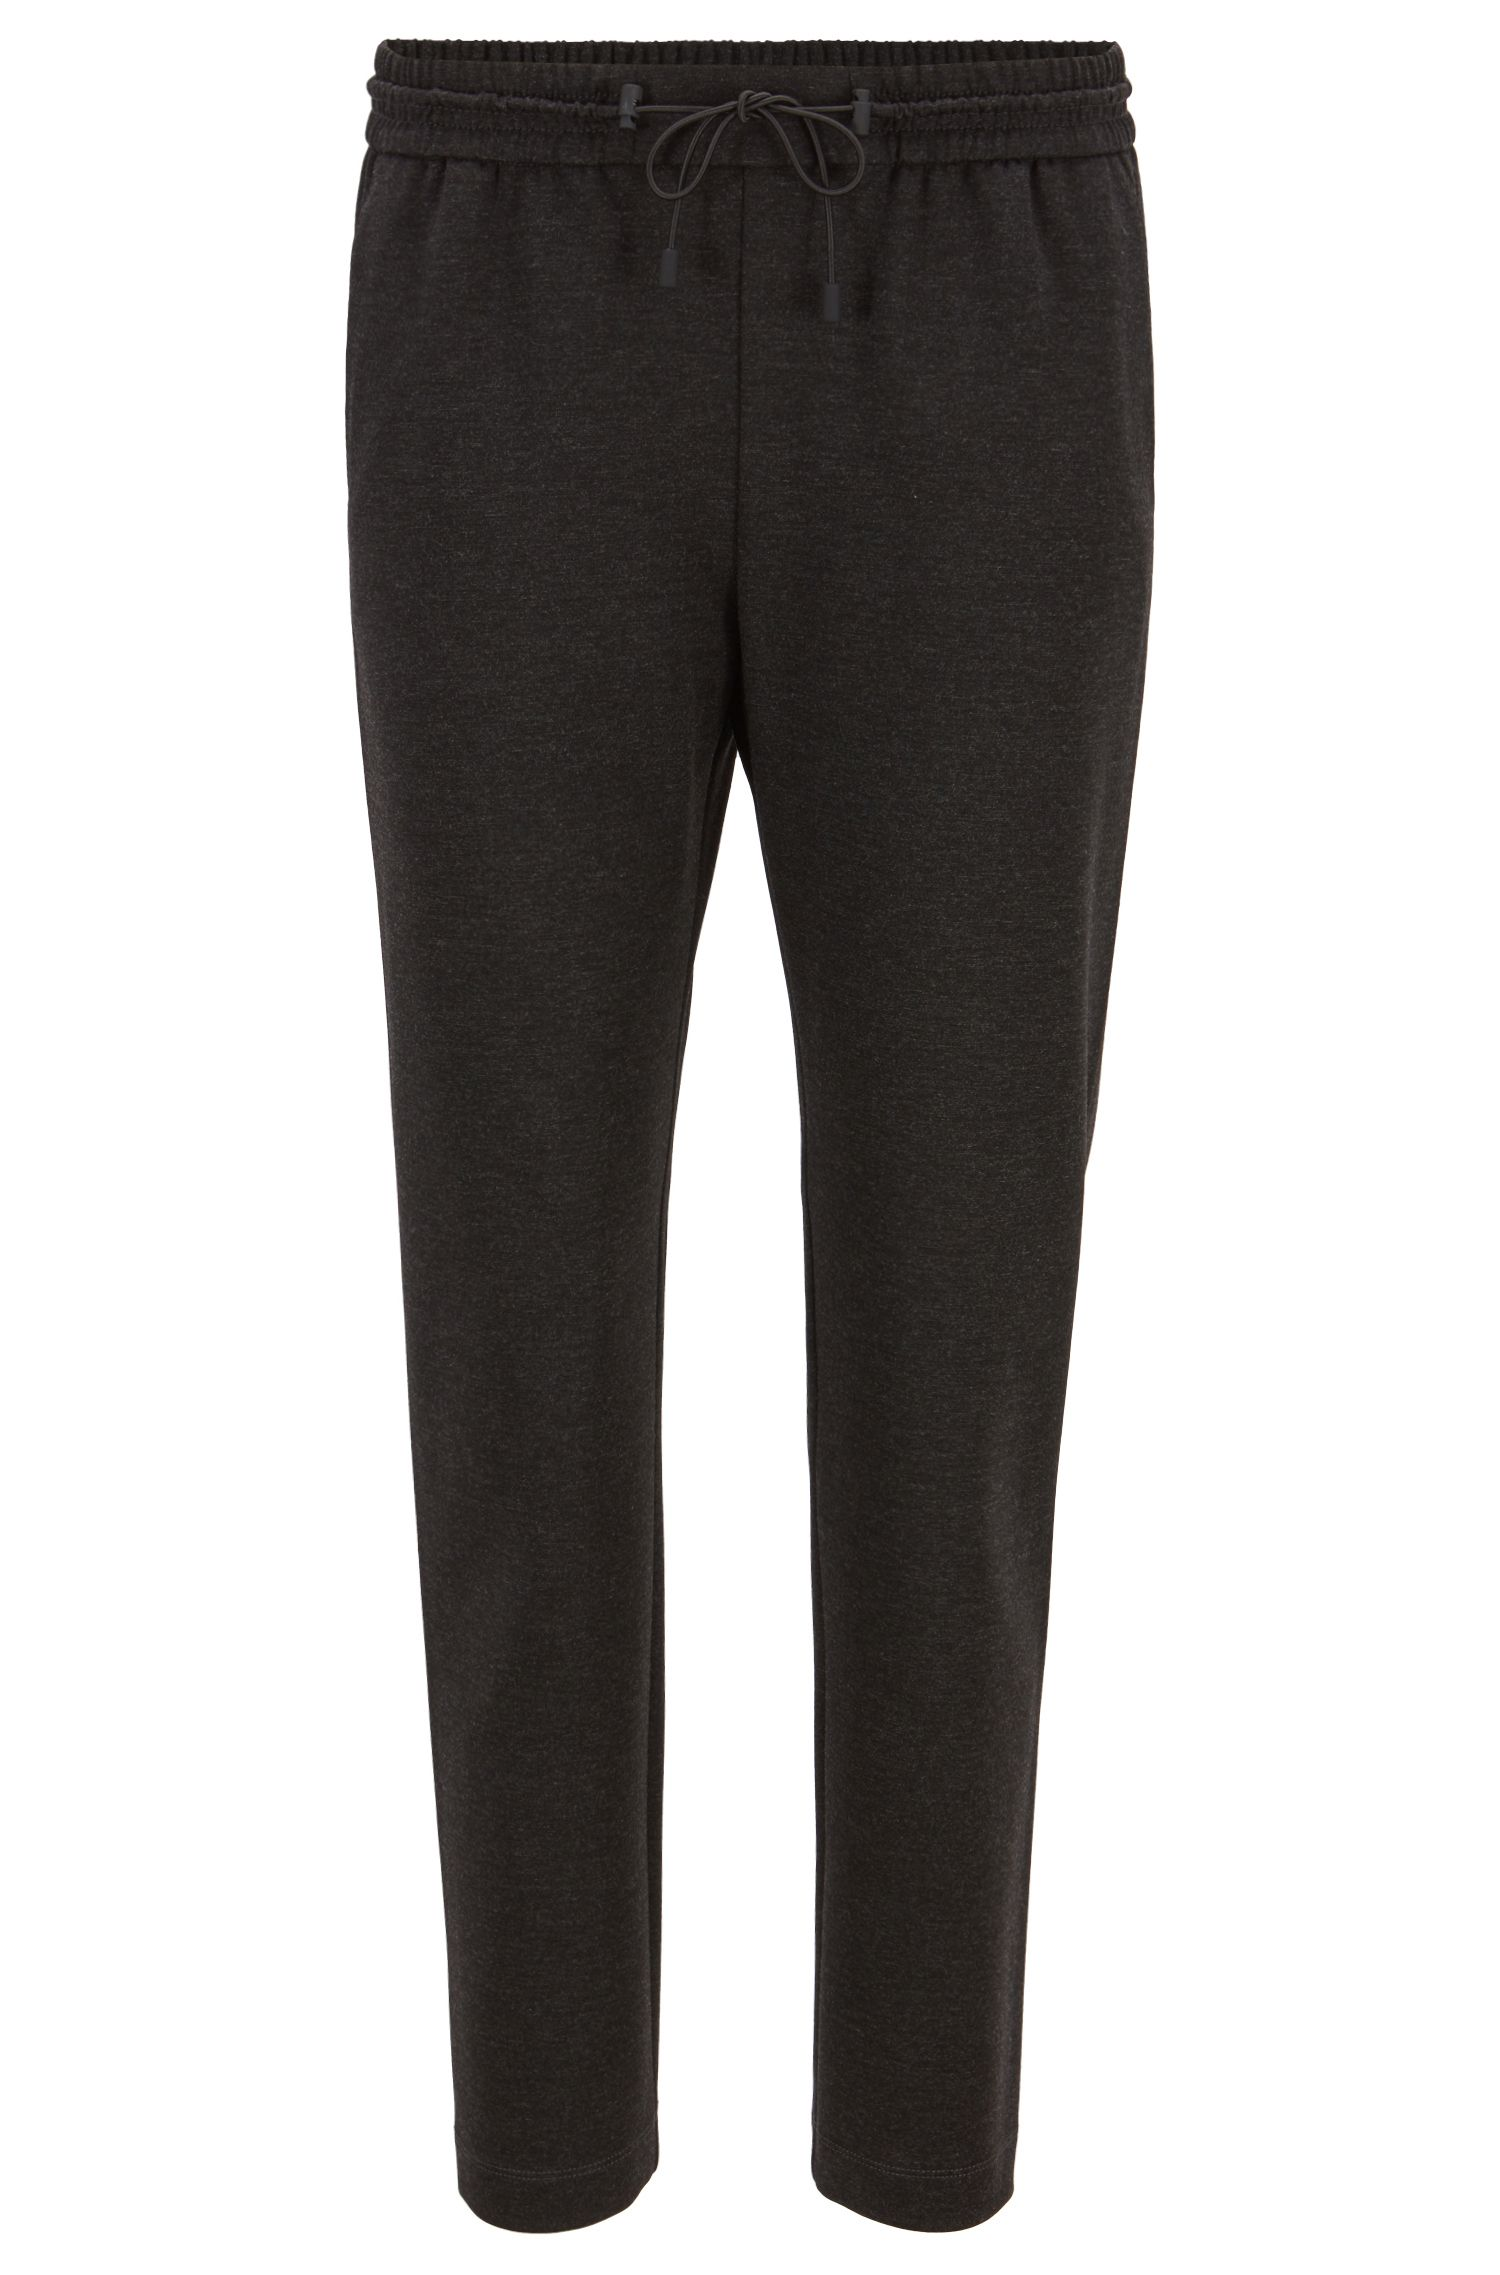 Pantalon de survêtement Relaxed Fit en jersey stretch, Gris sombre